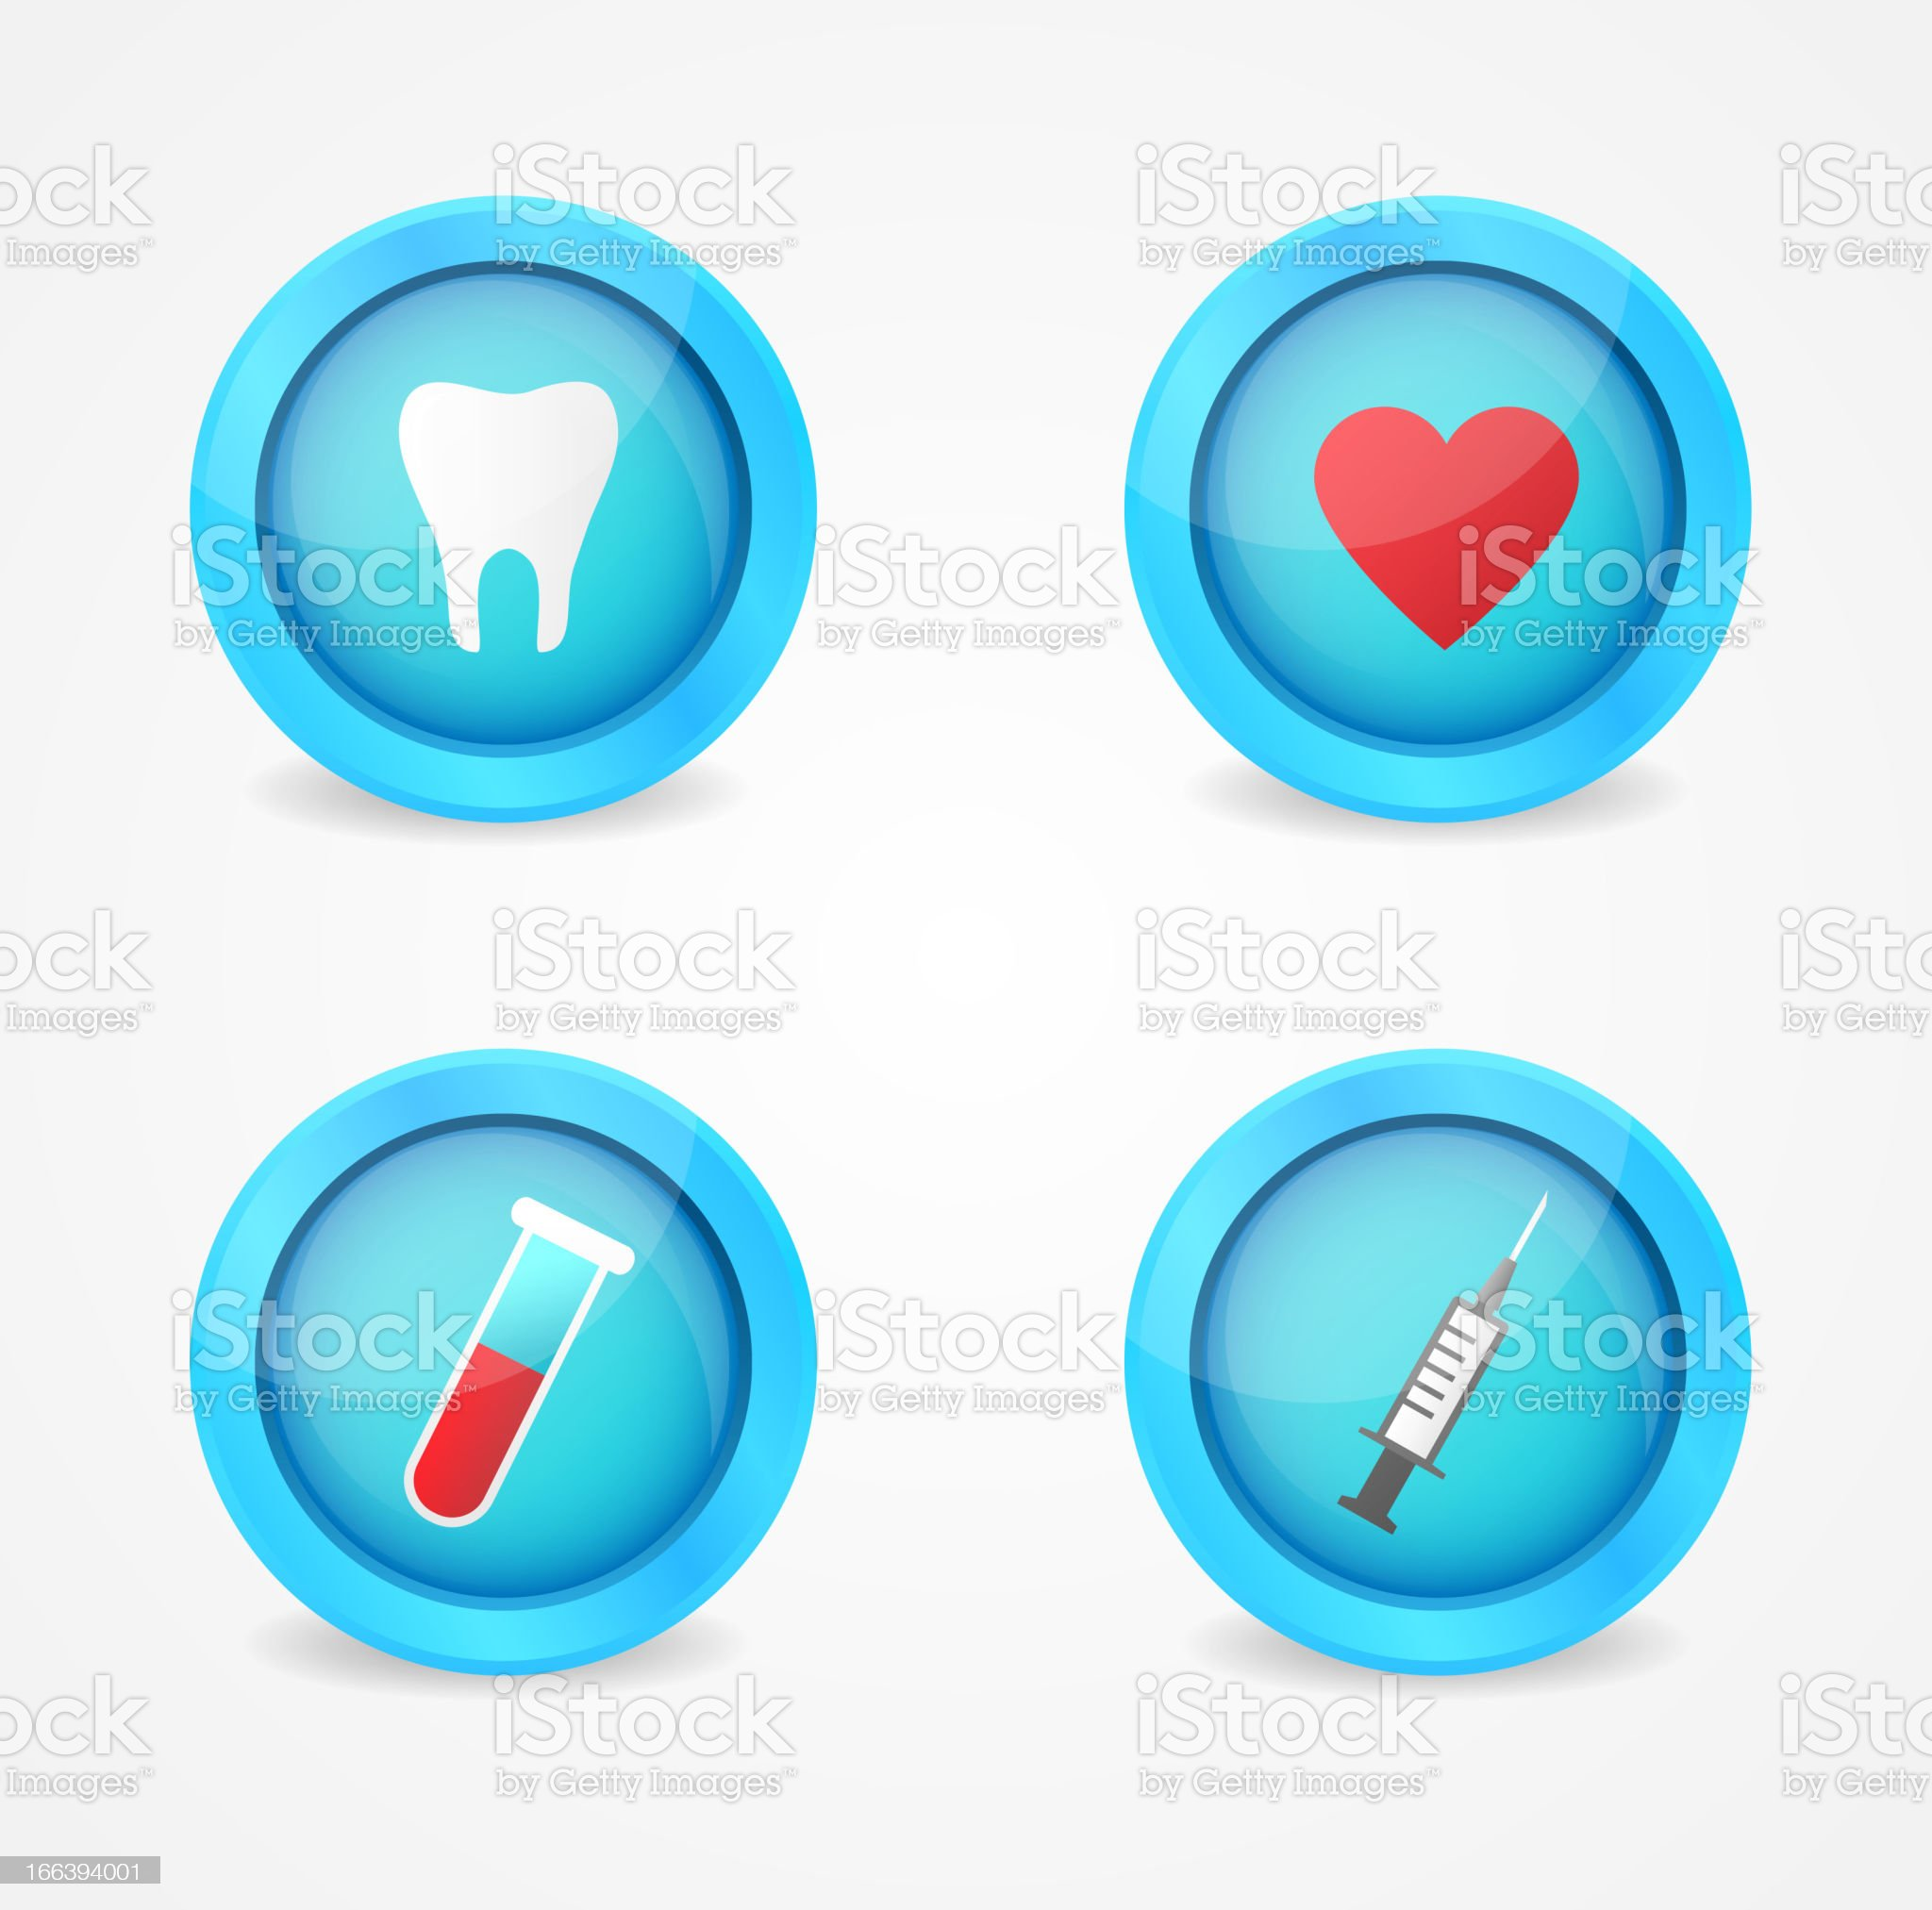 Vector set of medical icons royalty-free stock vector art